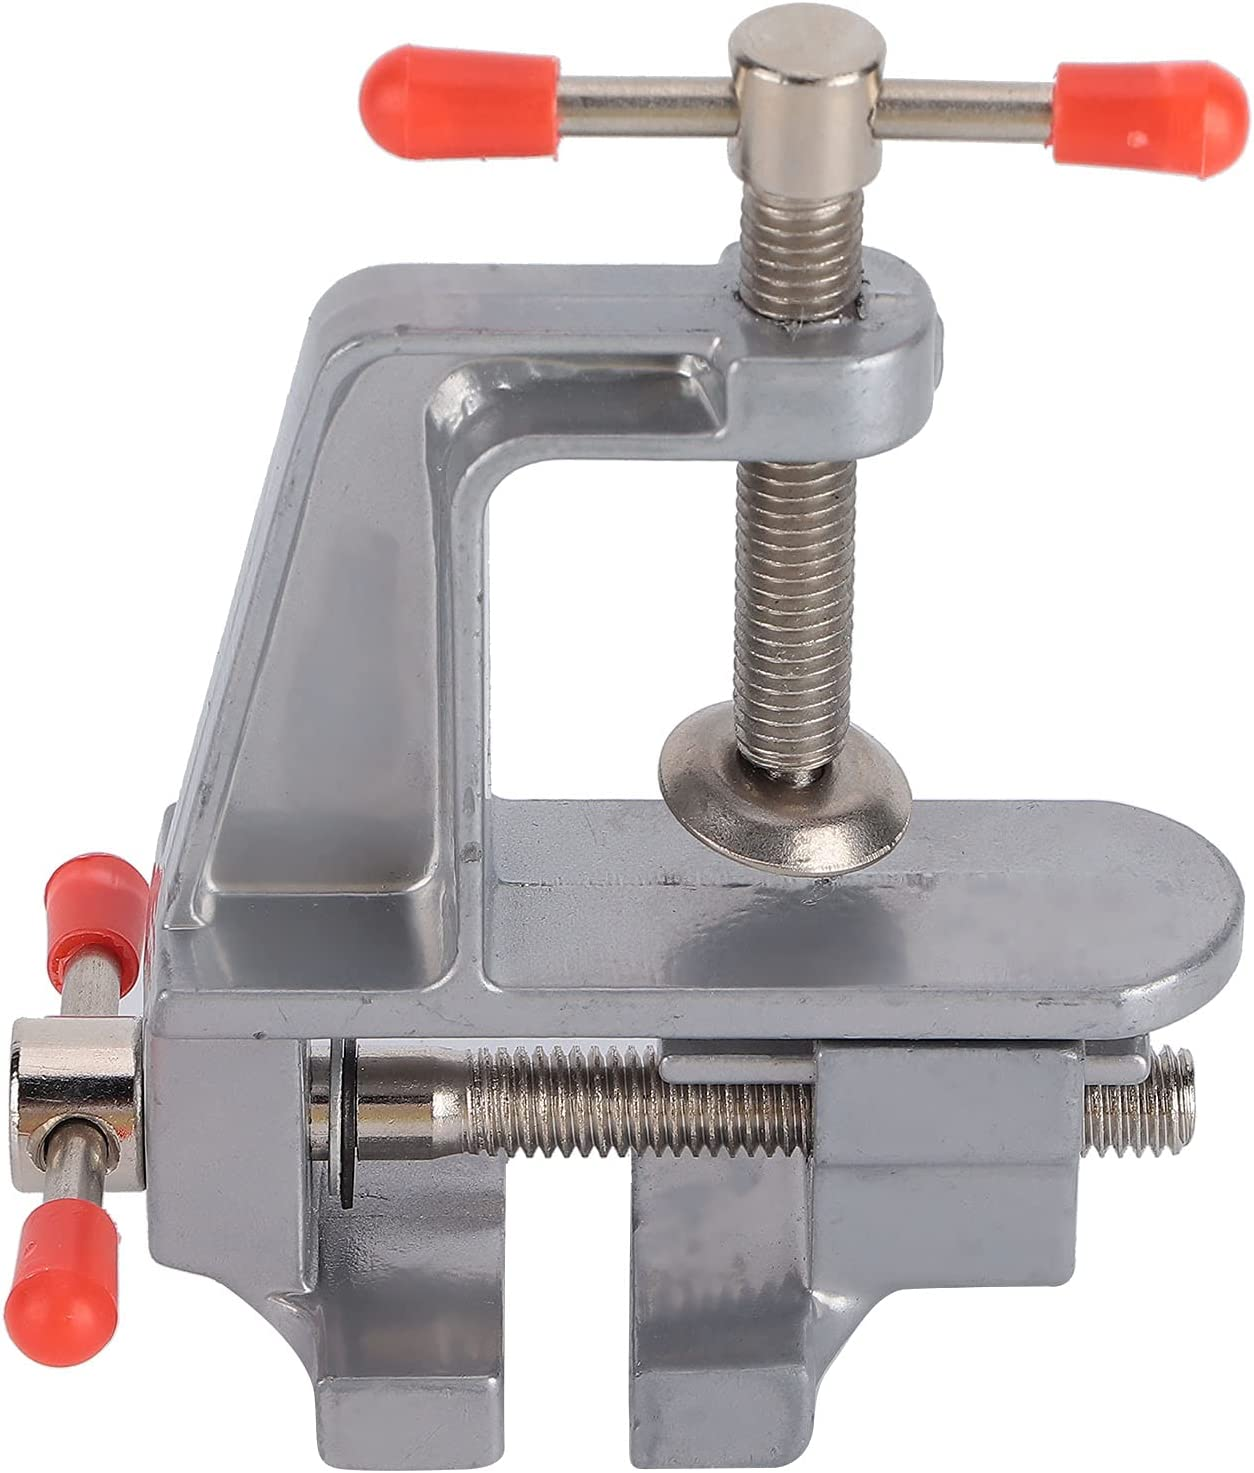 Ladieshow low-pricing Mini Bench Vise Table price Opening 1.1in Jaw Clamp Tab